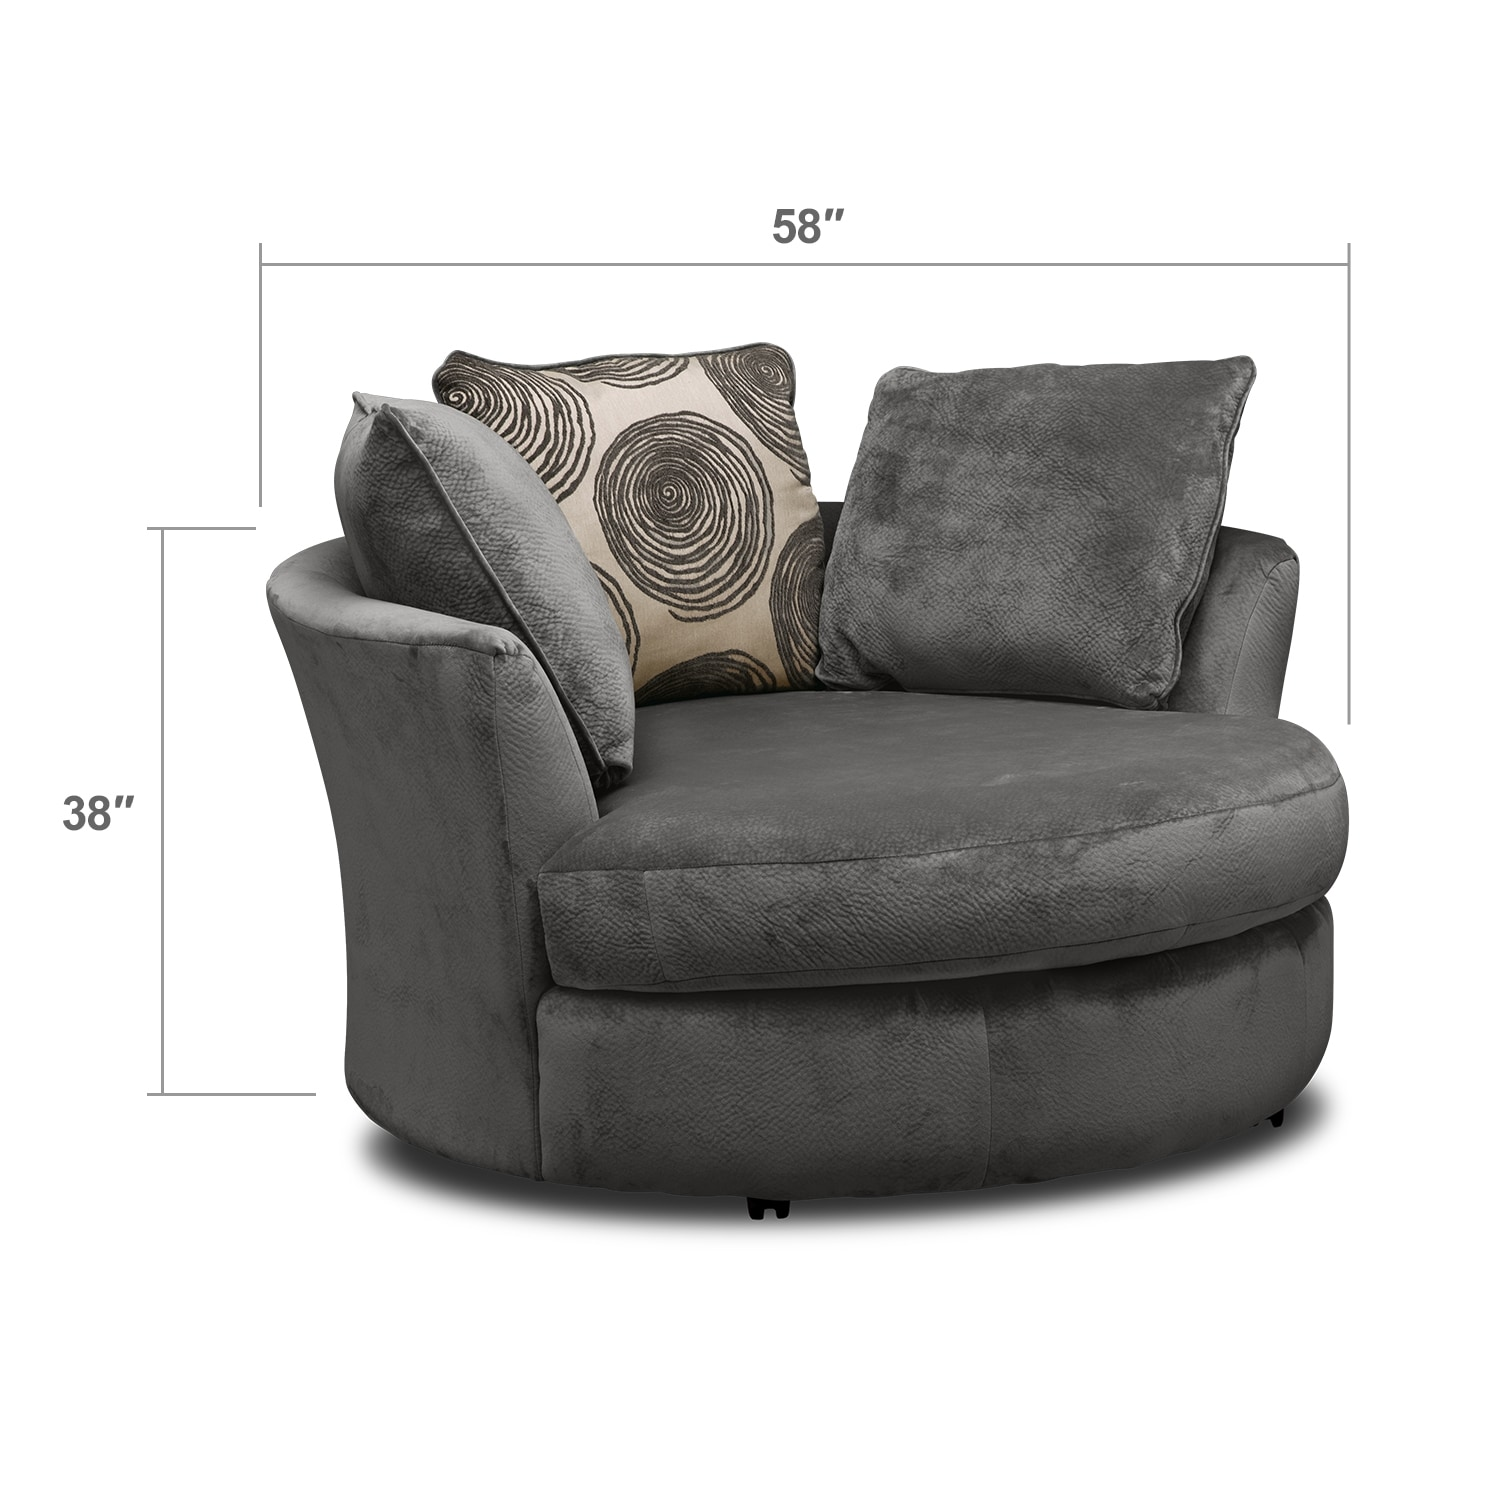 Cordelle Swivel Chair   Gray by Factory Outlet  Living Room. Cordelle Swivel Chair   Gray   Value City Furniture